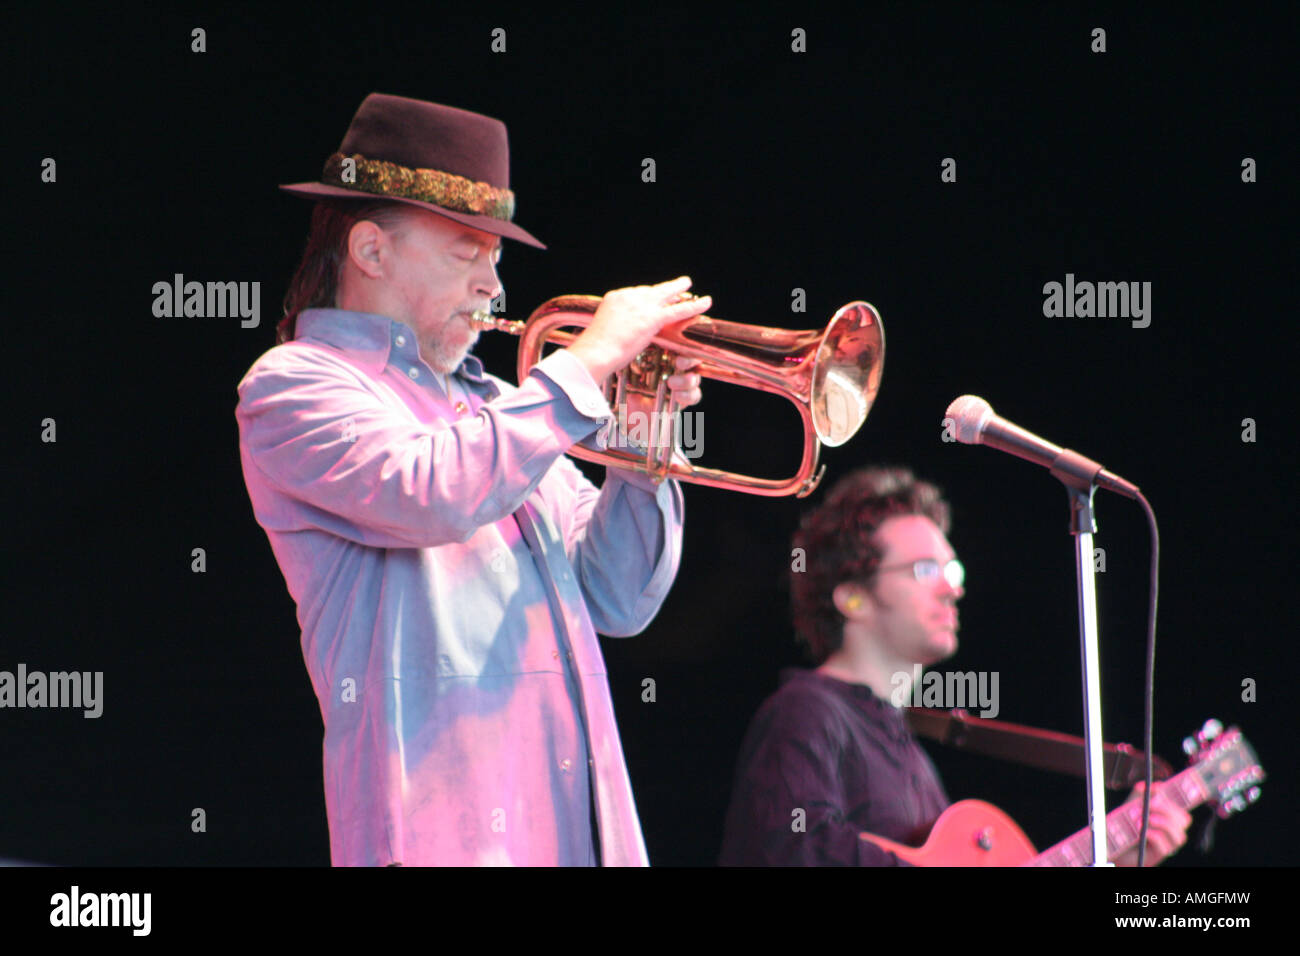 Chuck Mangione Stock Photos & Chuck Mangione Stock Images - Alamy